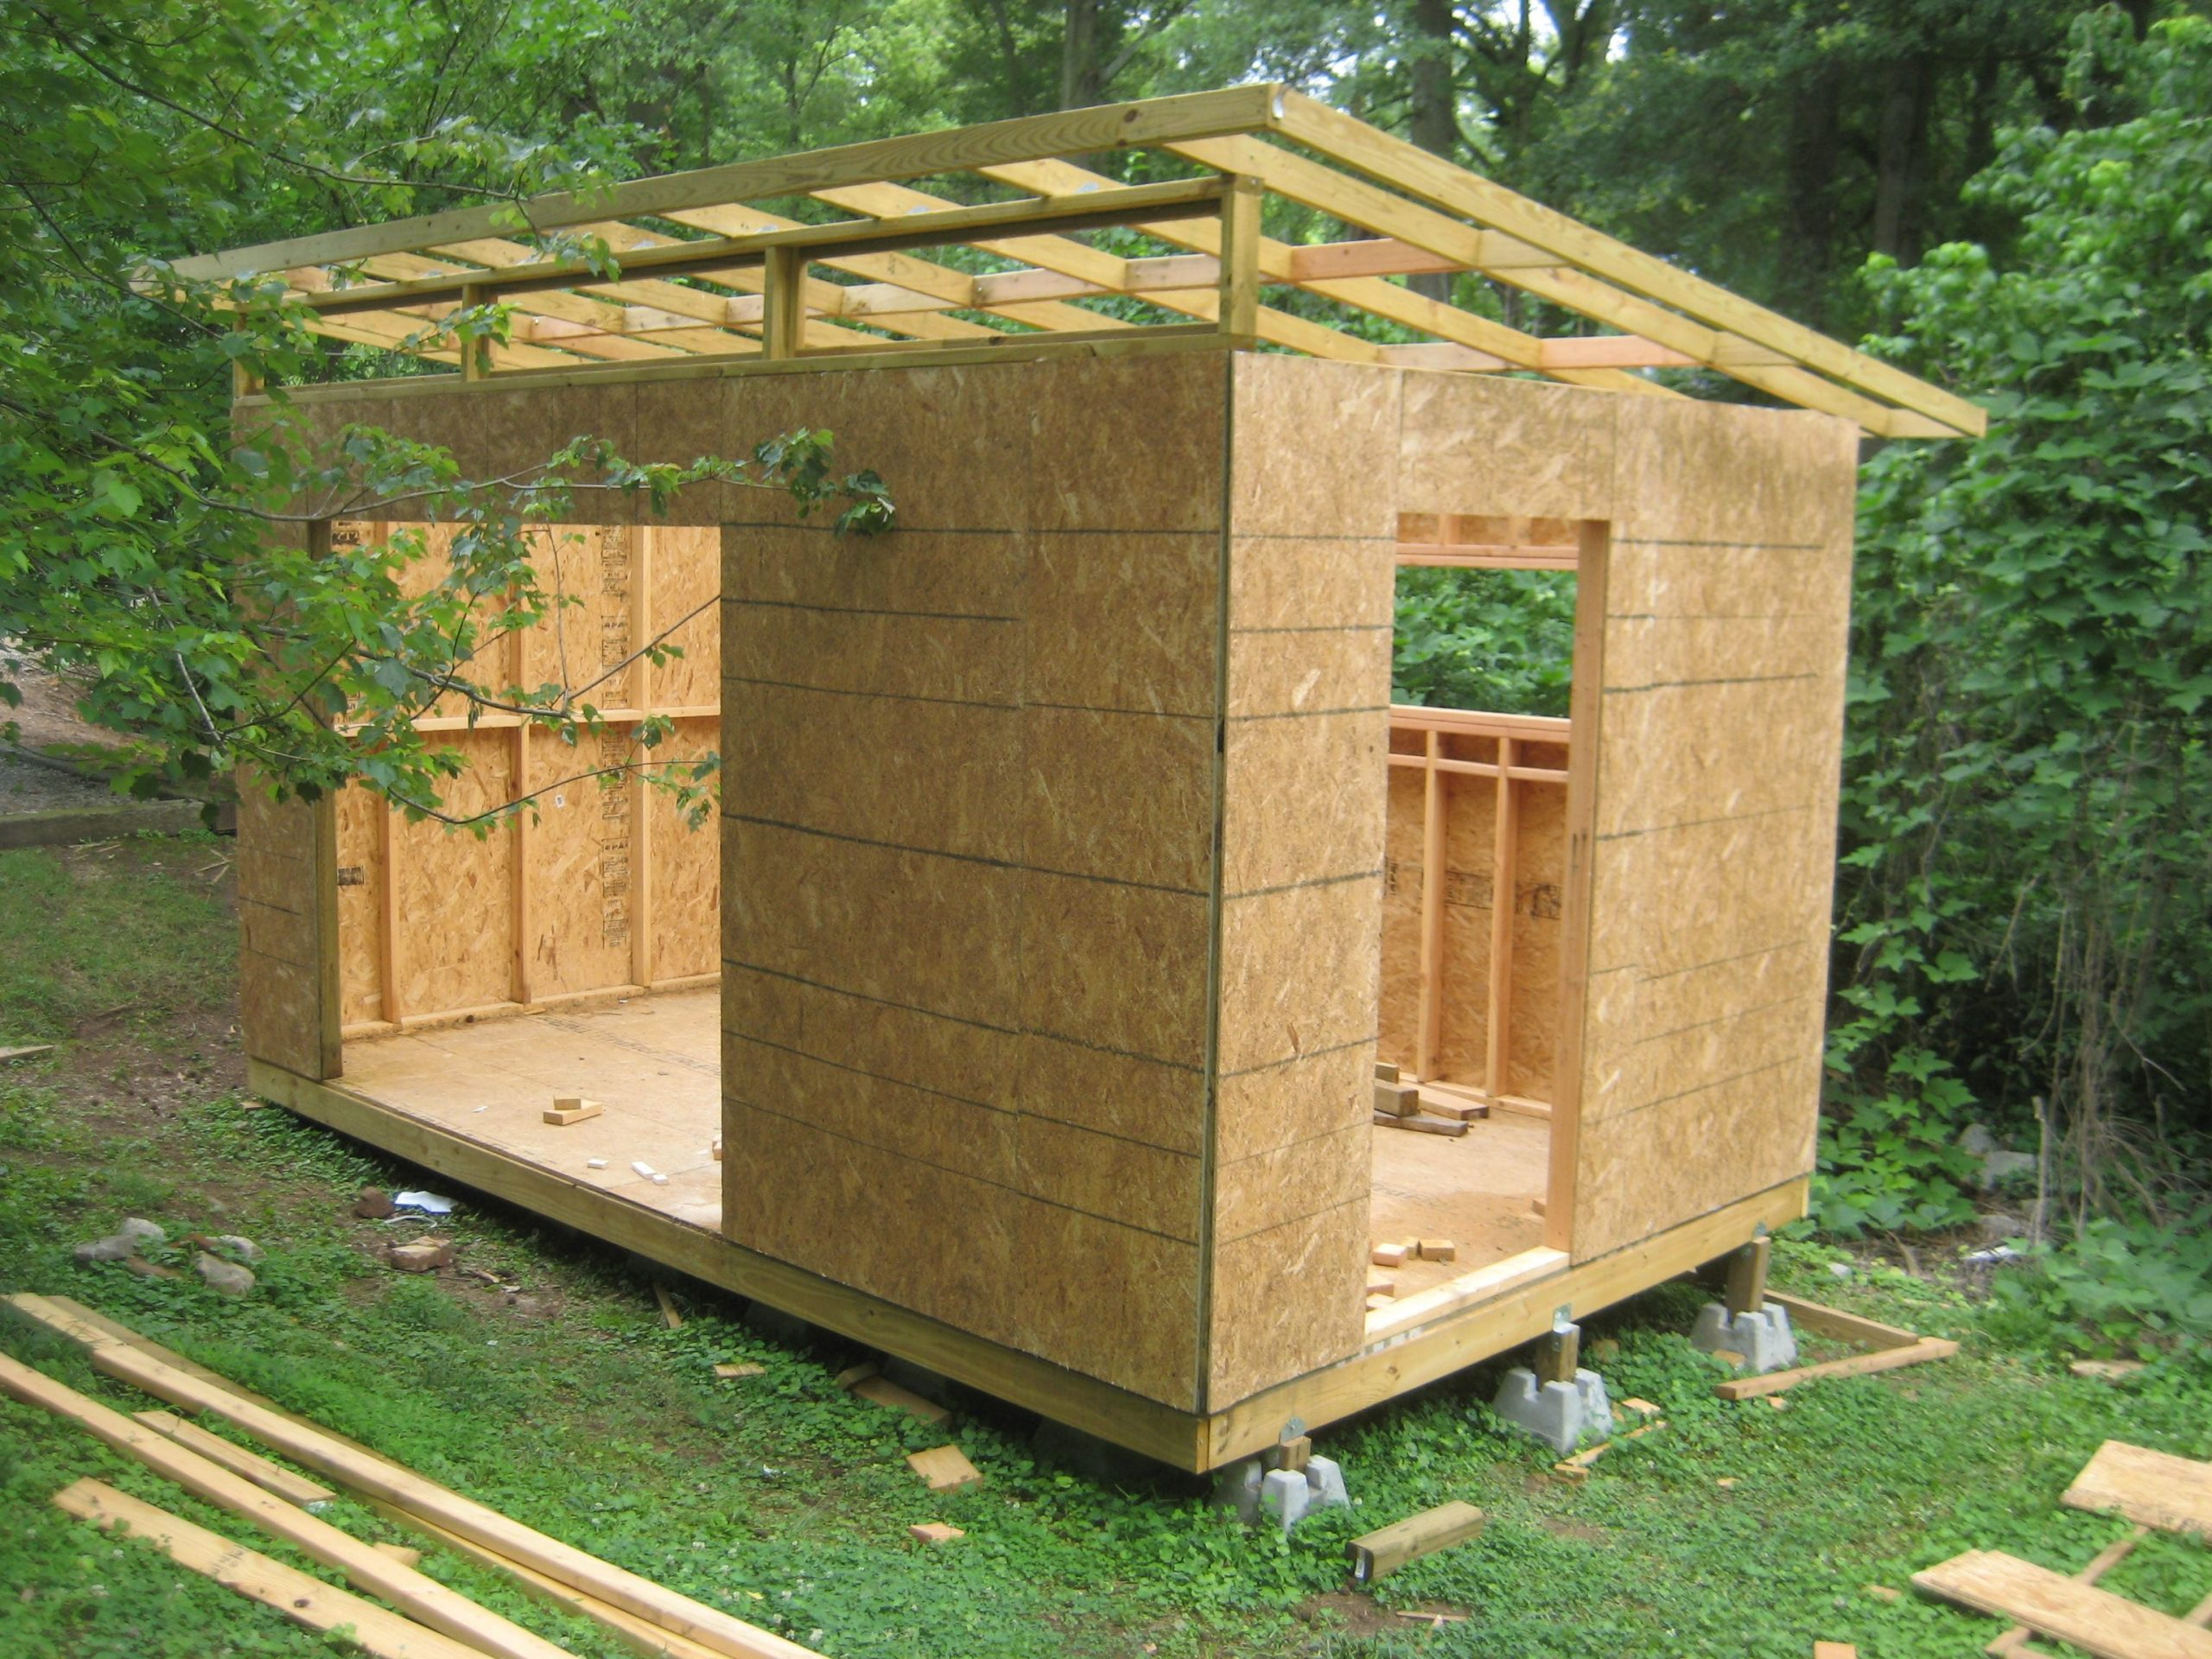 Simphome.com diy modern shed project construction pinterest shed plans within gardening shed ideas